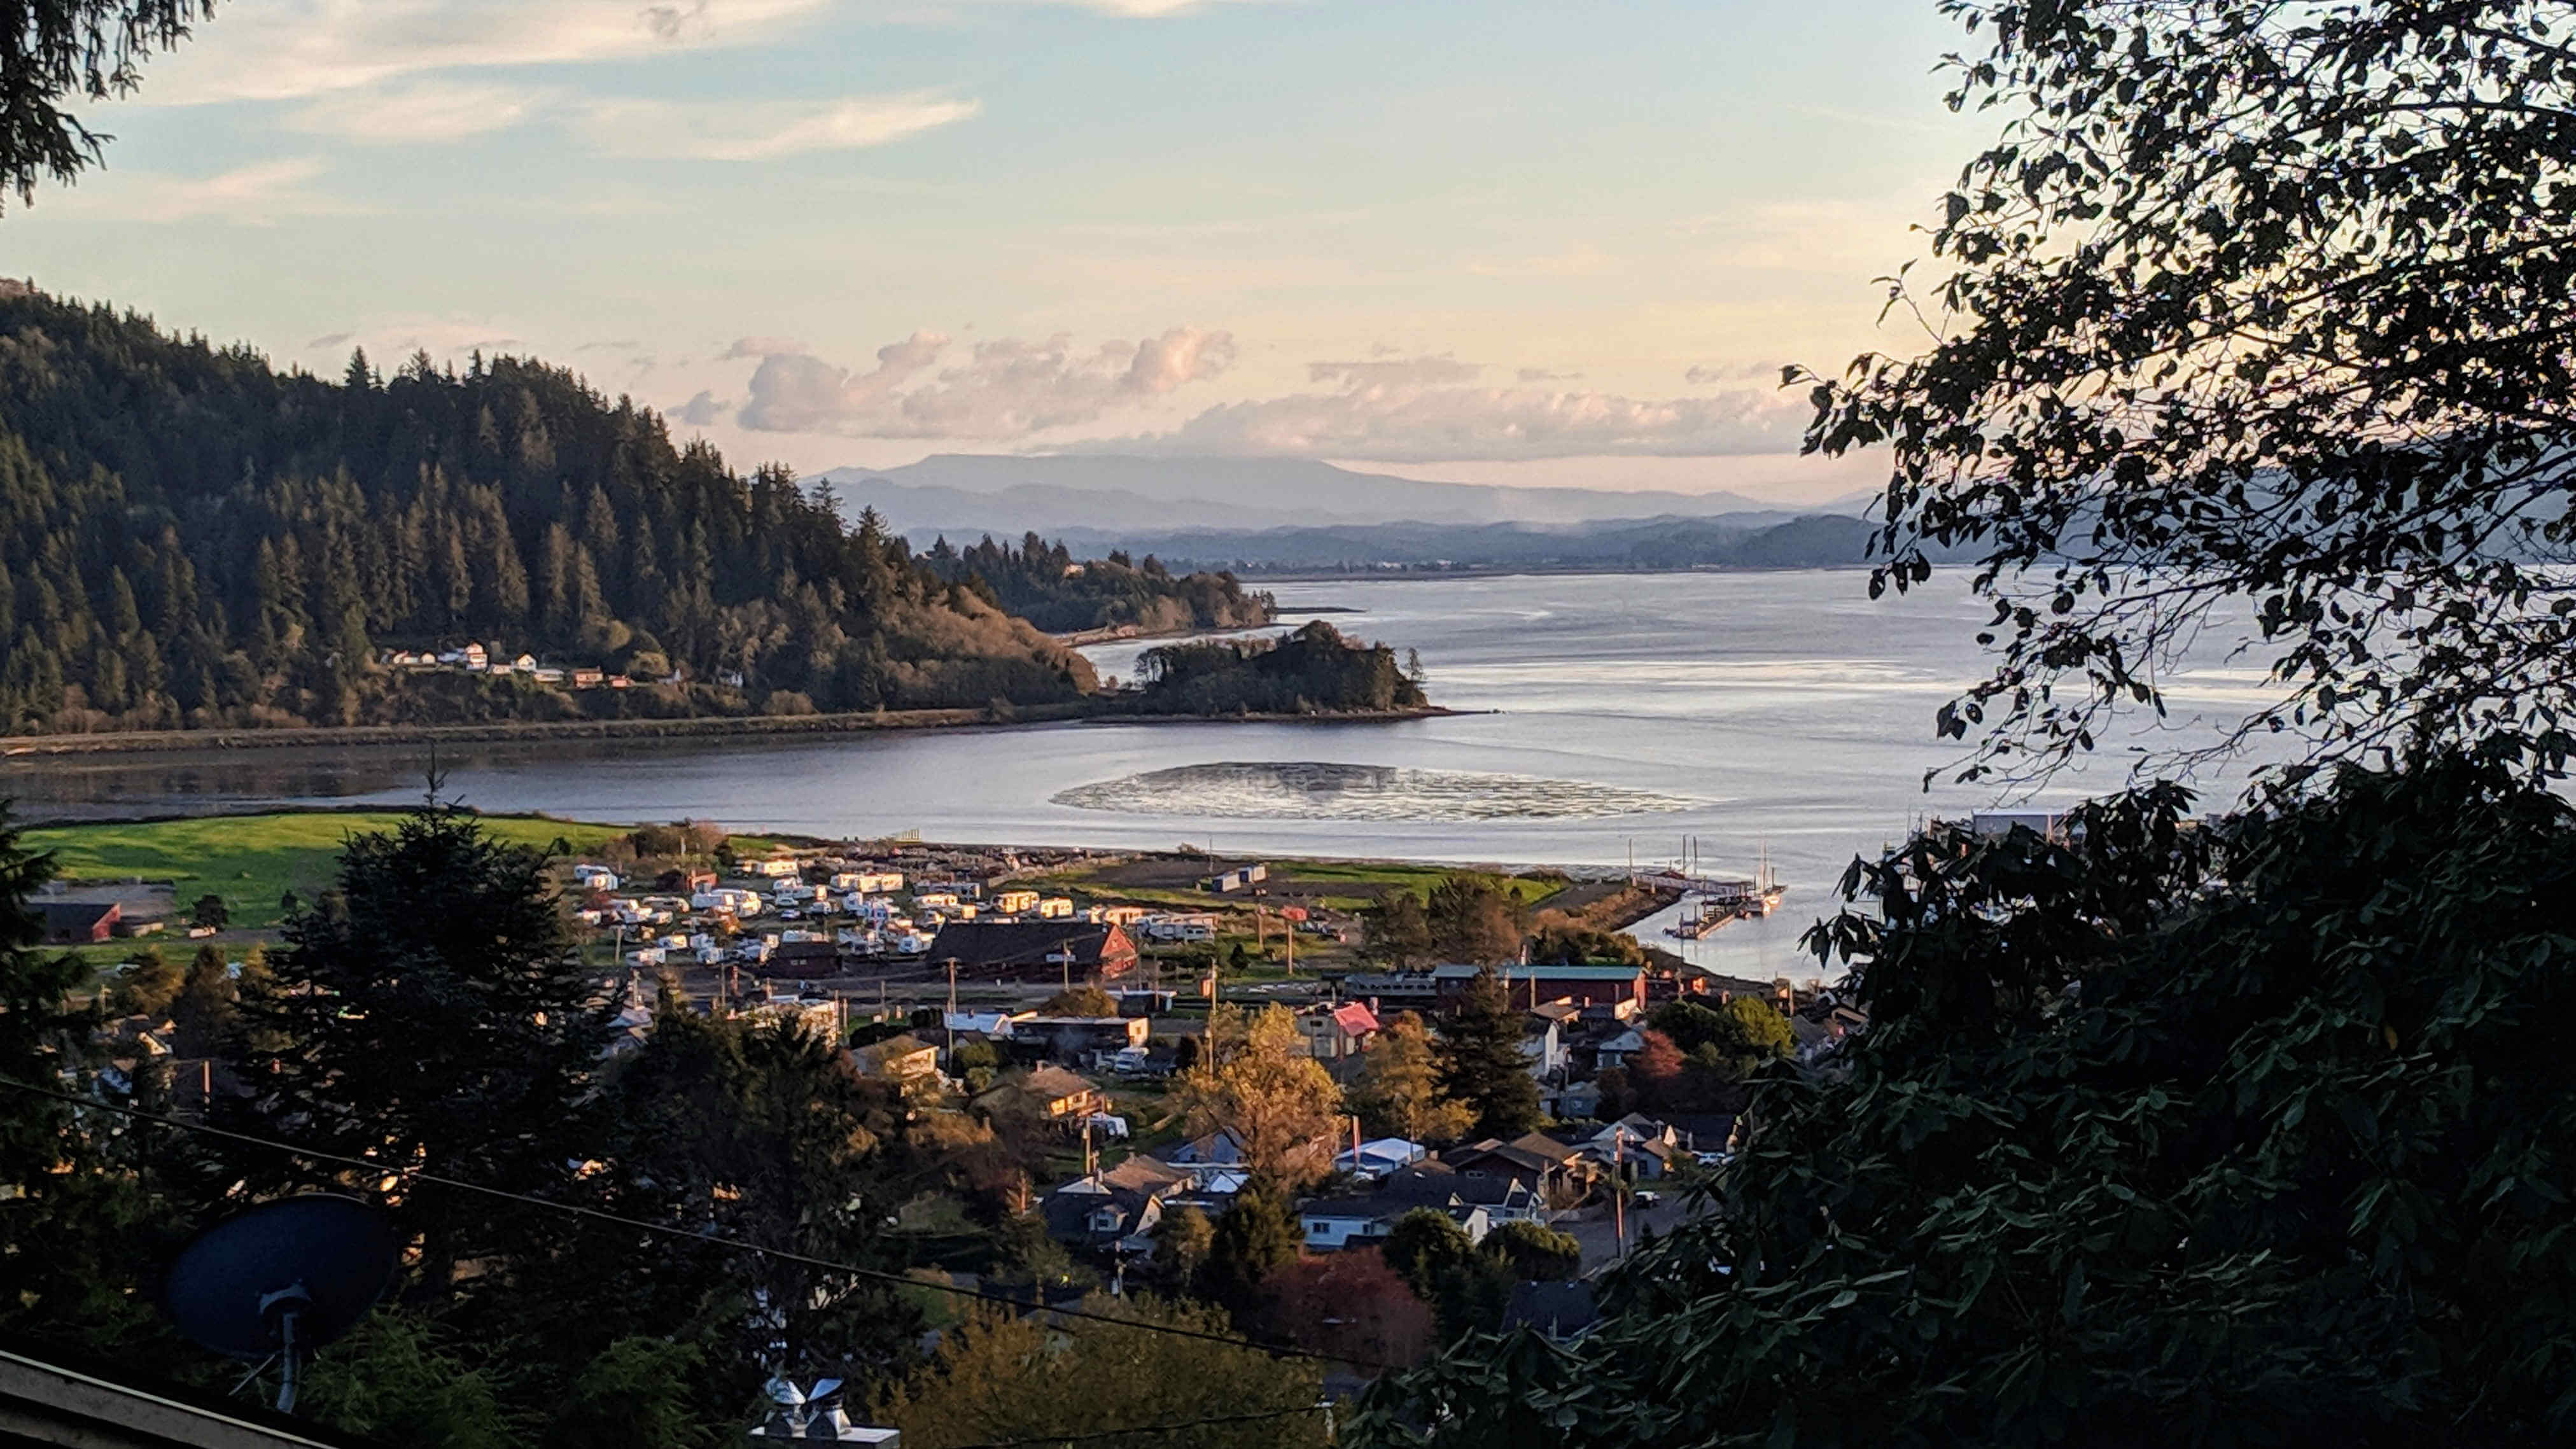 View of Tillamook Bay from Holly St., Garibaldi, OR